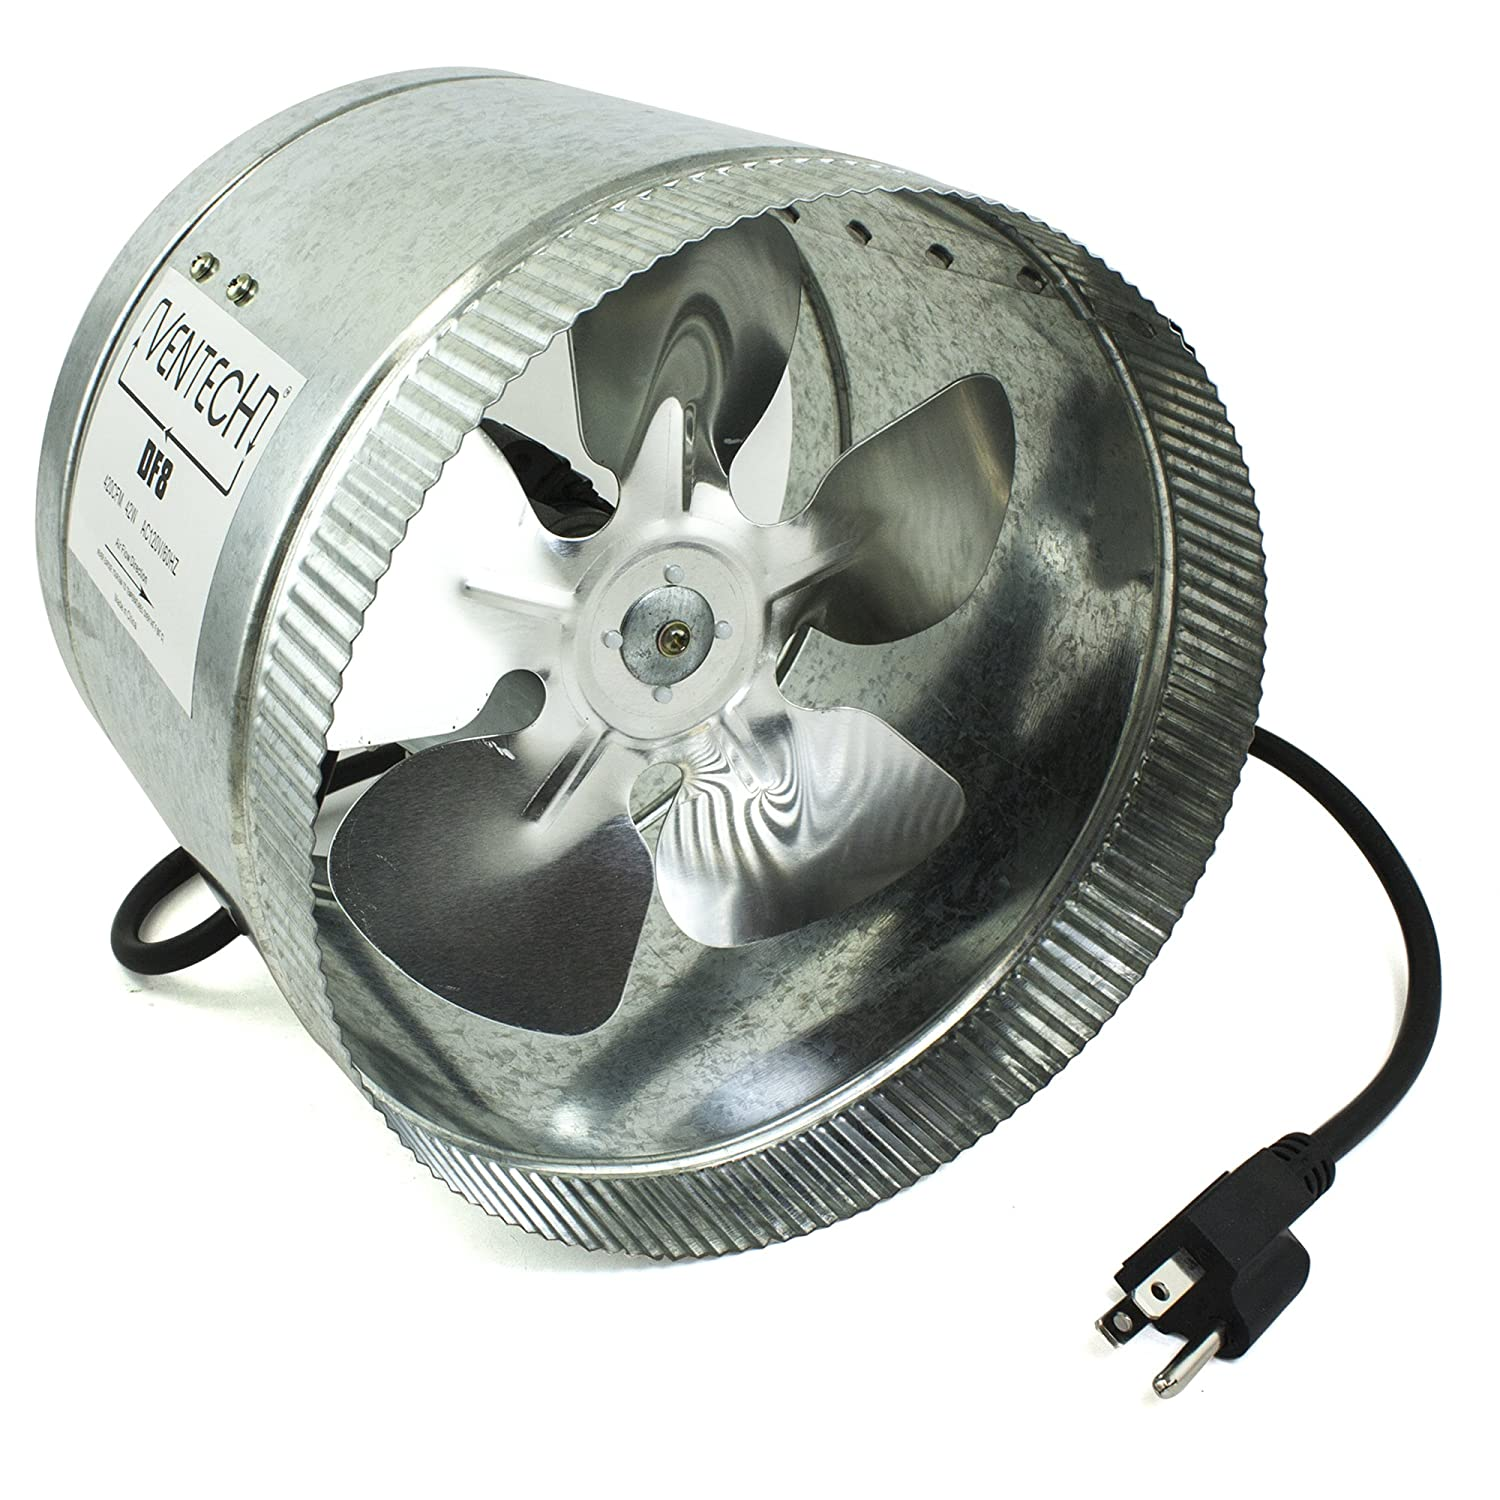 The Top Fan And Ventilation Systems Safetycom - Bathroom exhaust fan 150 cfm for bathroom decor ideas